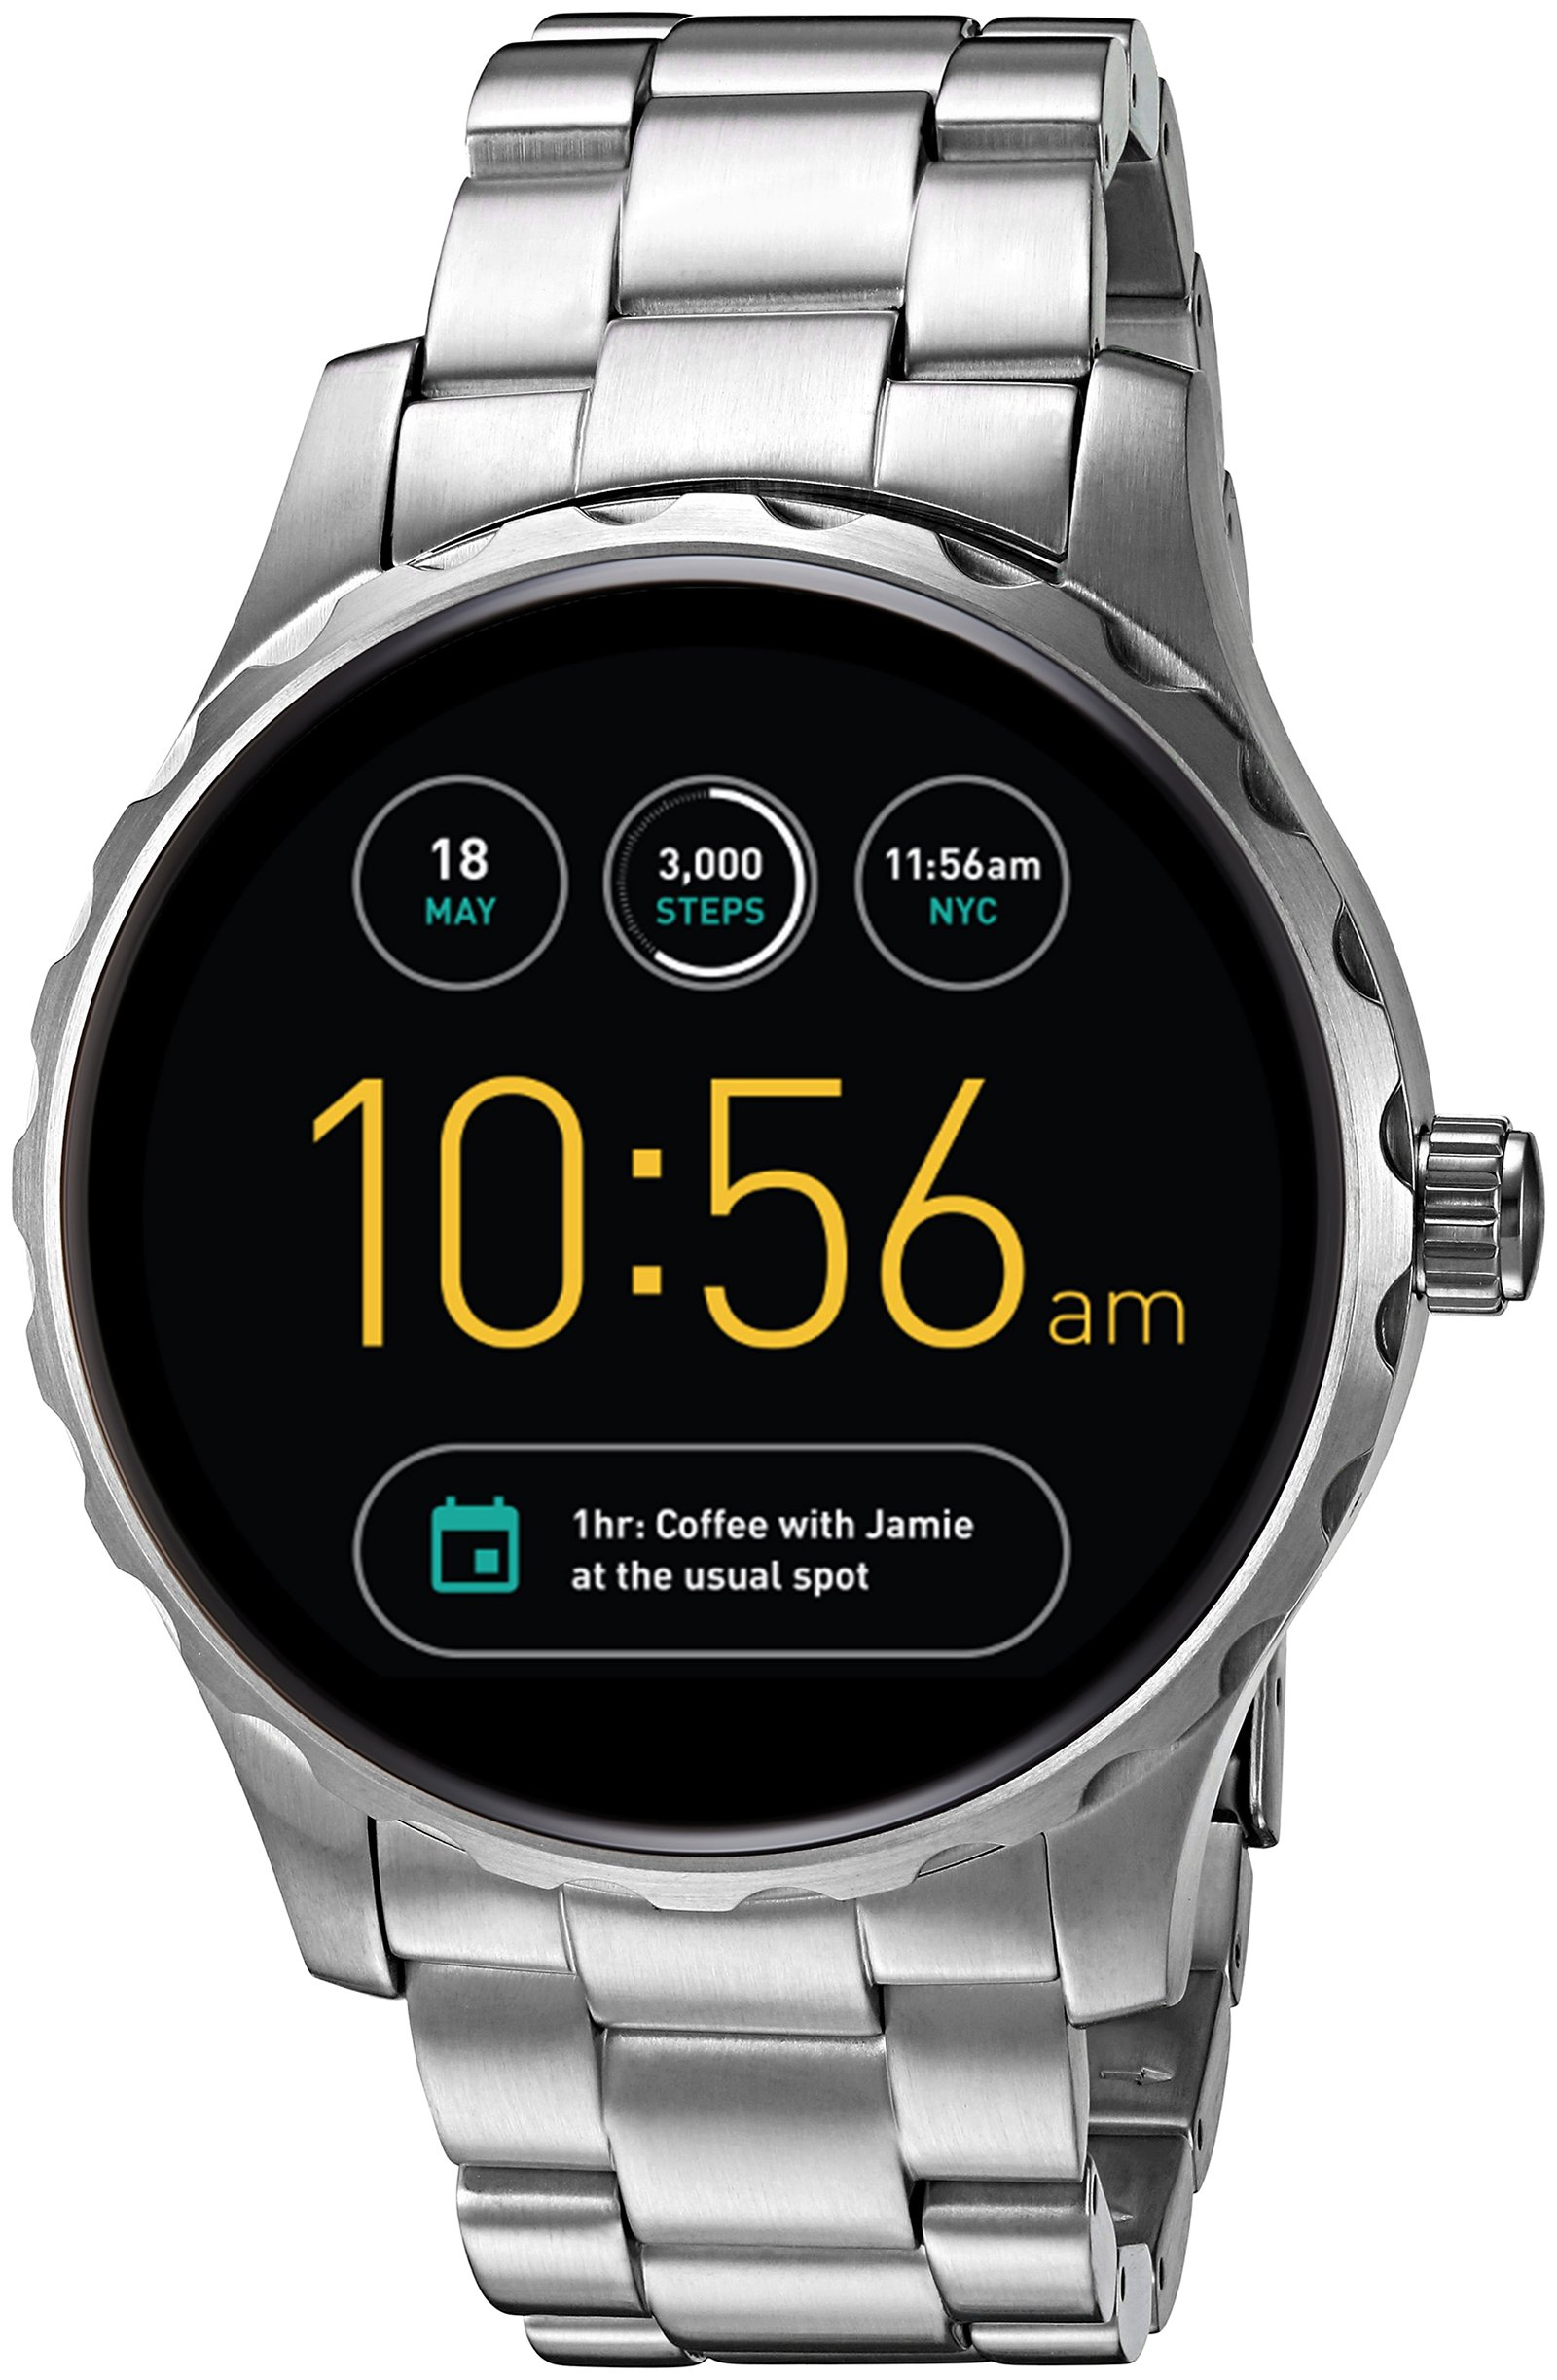 Fossil Q Marshal Gen 2 Stainless Steel Touchscreen Smartwatch FTW2109 by Fossil